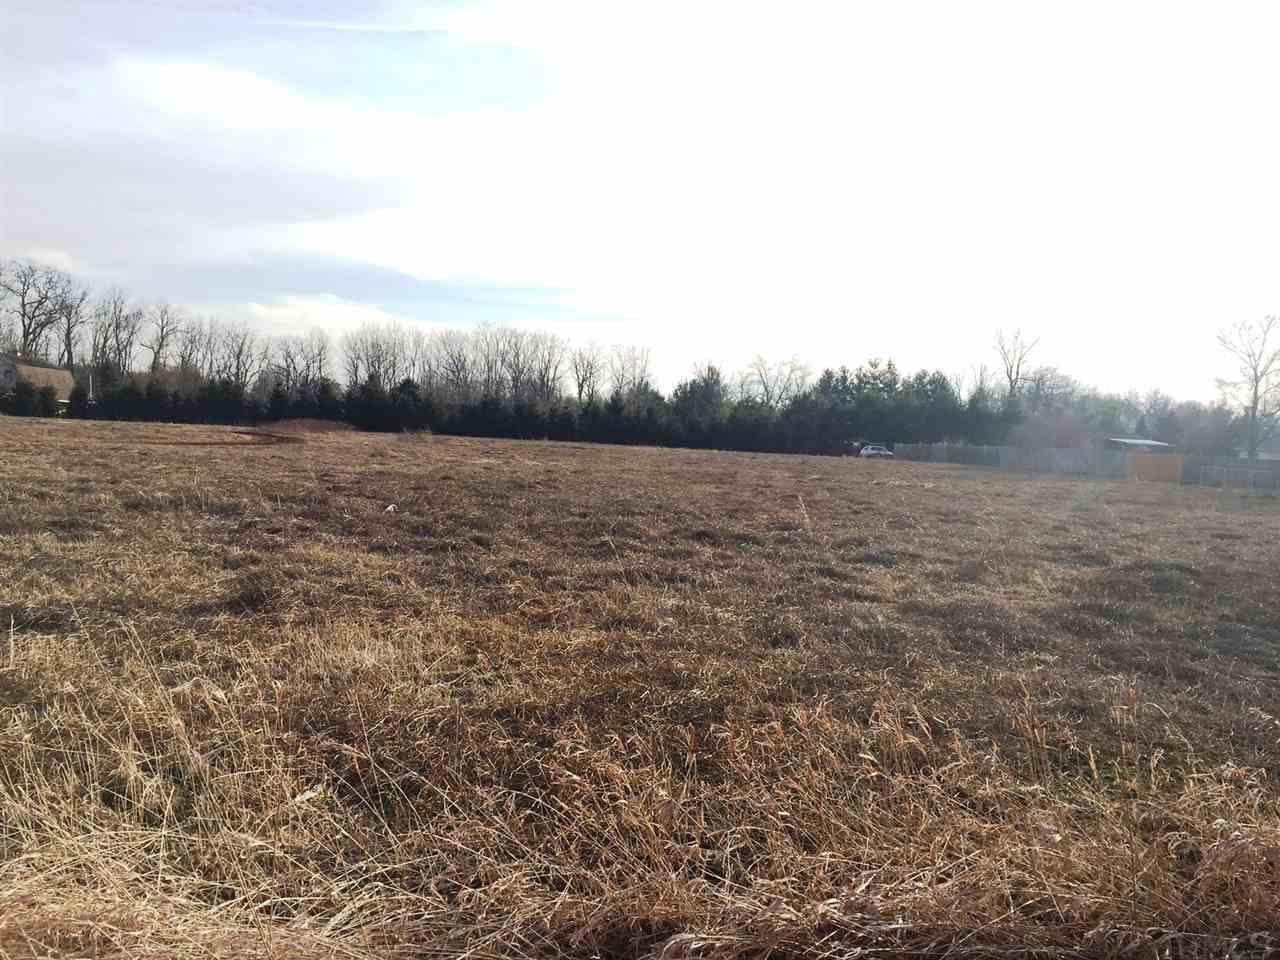 Lot 4 750 N, Orland, IN 46776